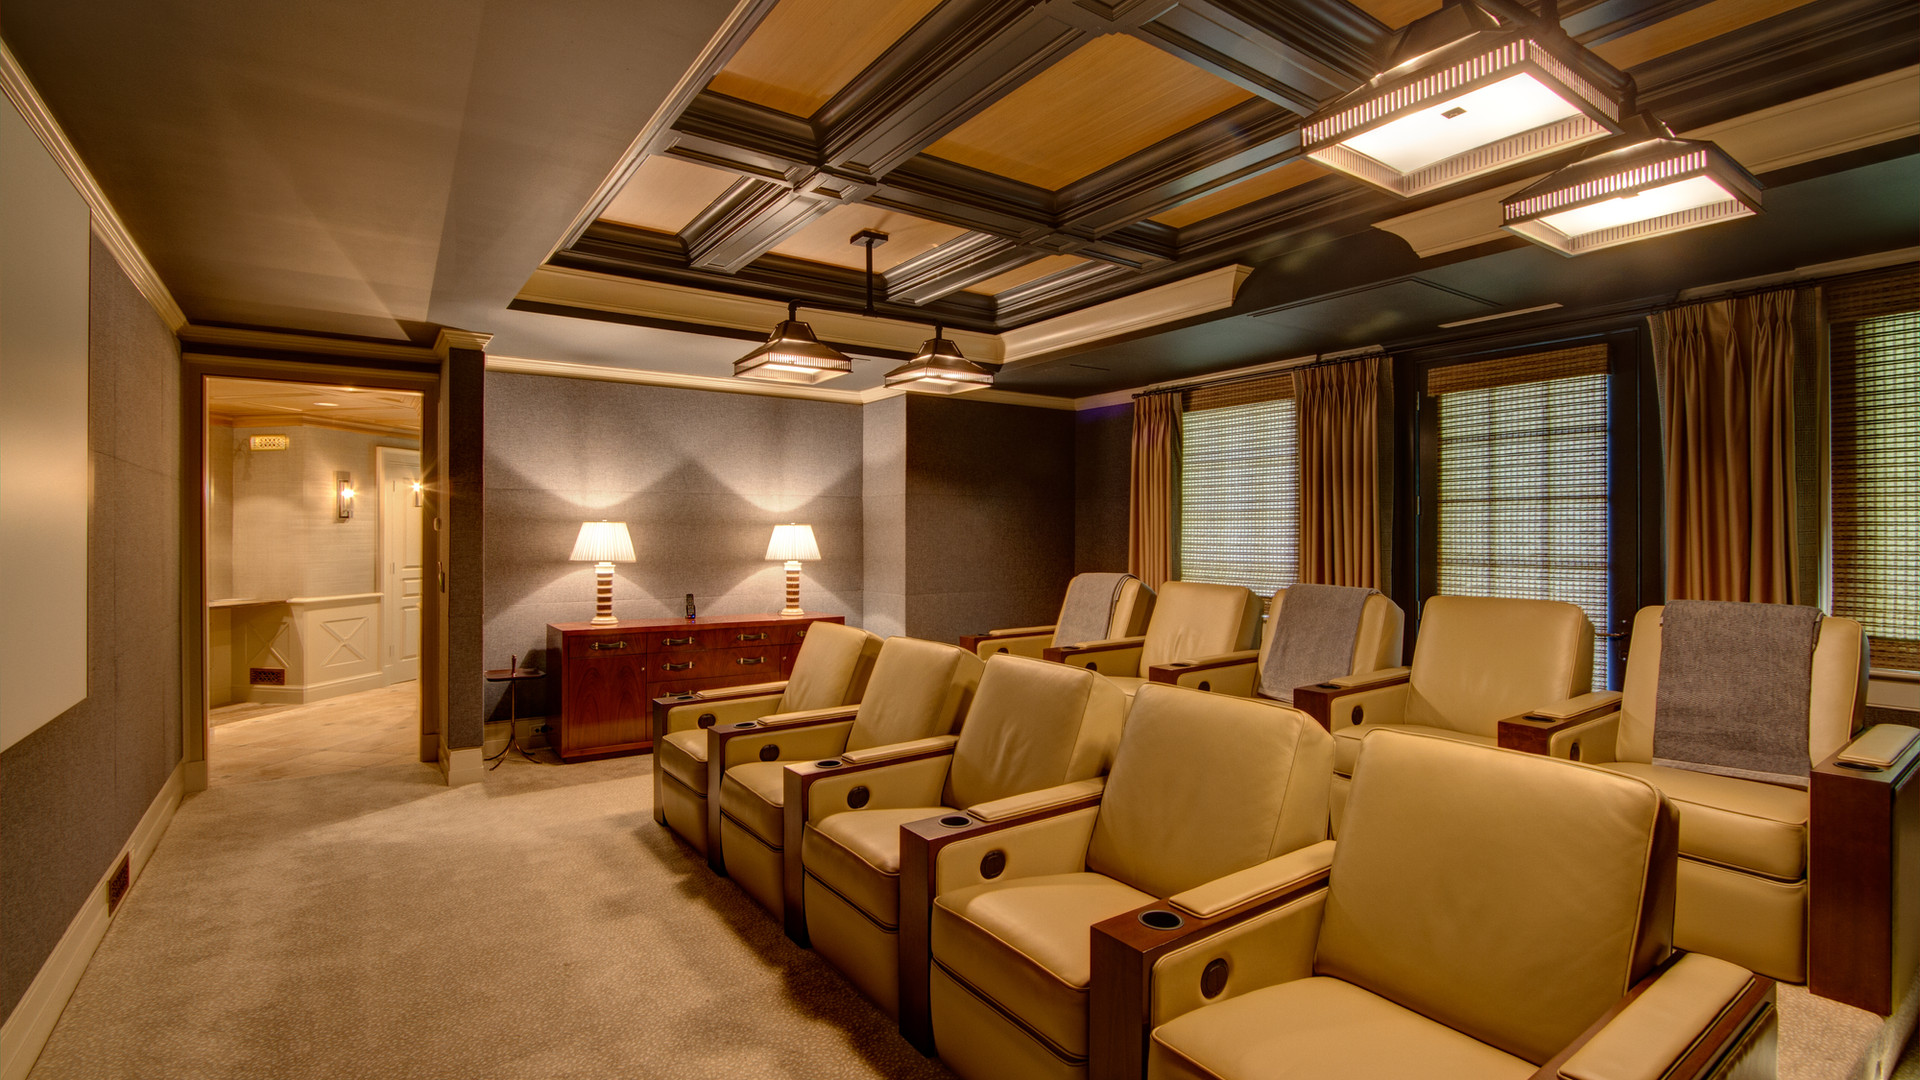 Introduction To Home Theater Part III: The Installation